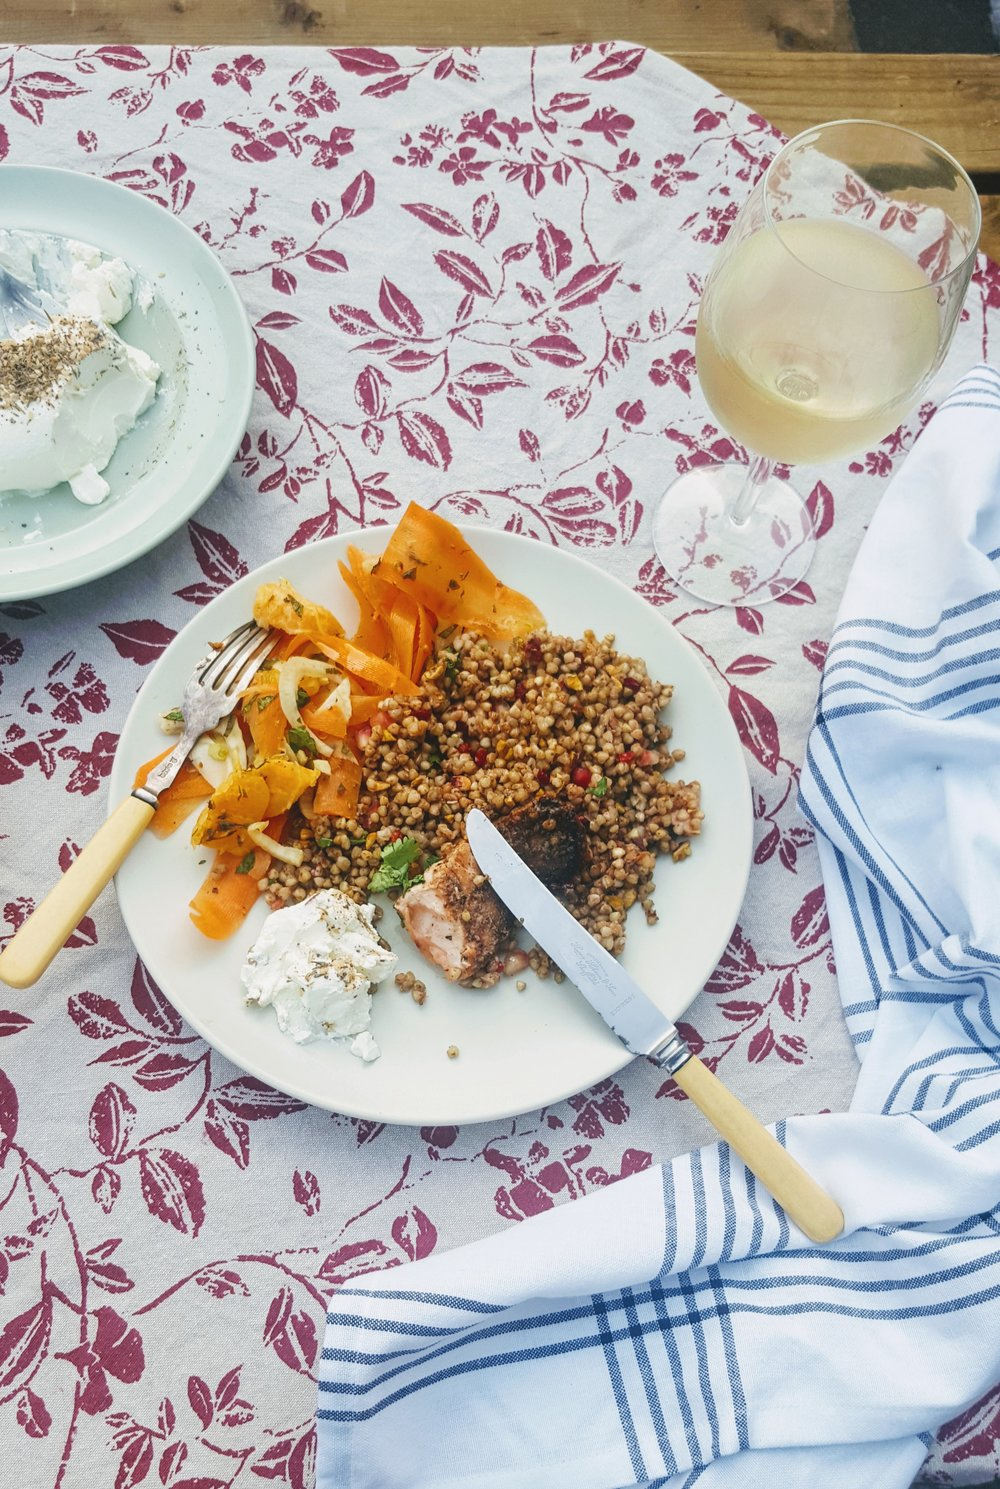 Sticky Pomegranate Salmon with Buckwheat and Barberry Salad with Spiced Pomegranate   Fennel, Orange and Carrot Salad